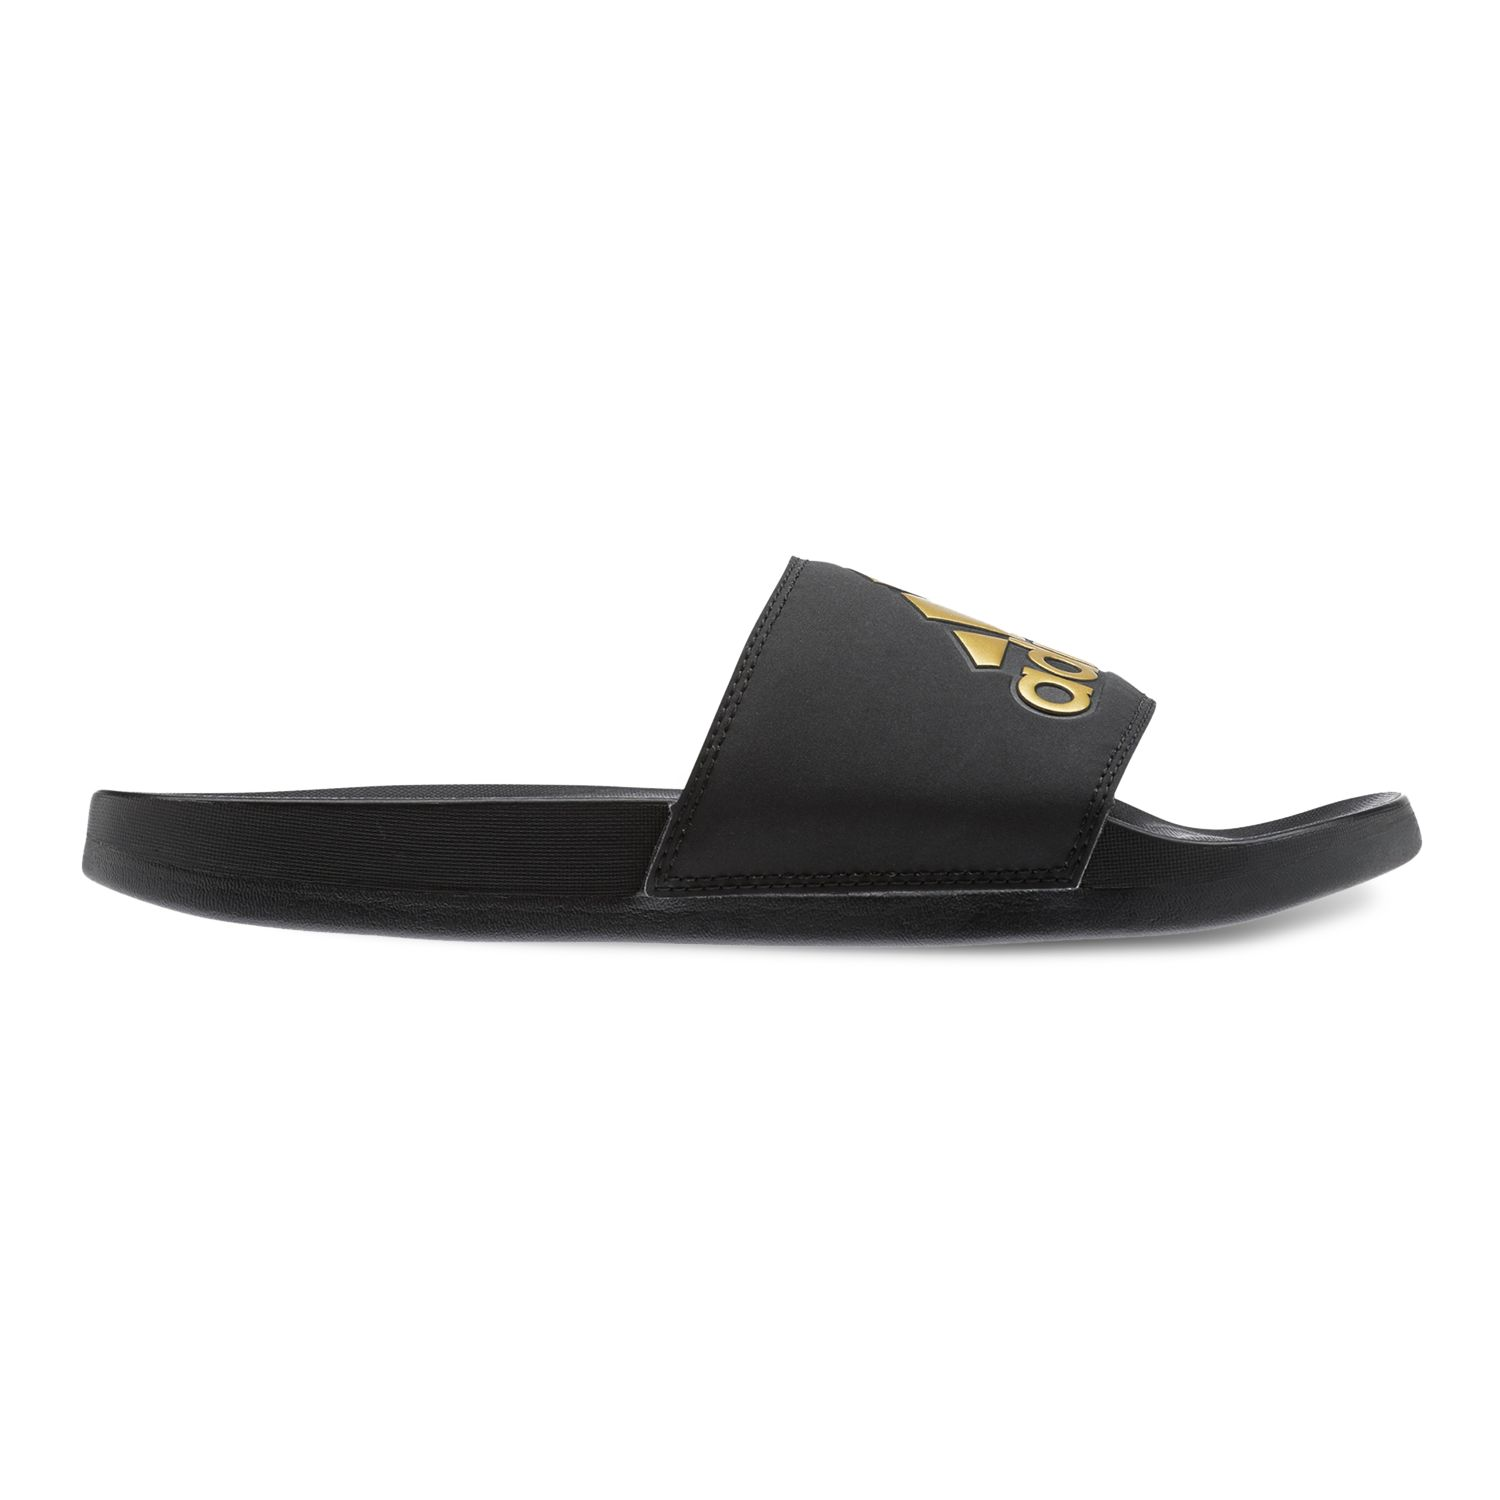 adidas cloudfoam slides womens